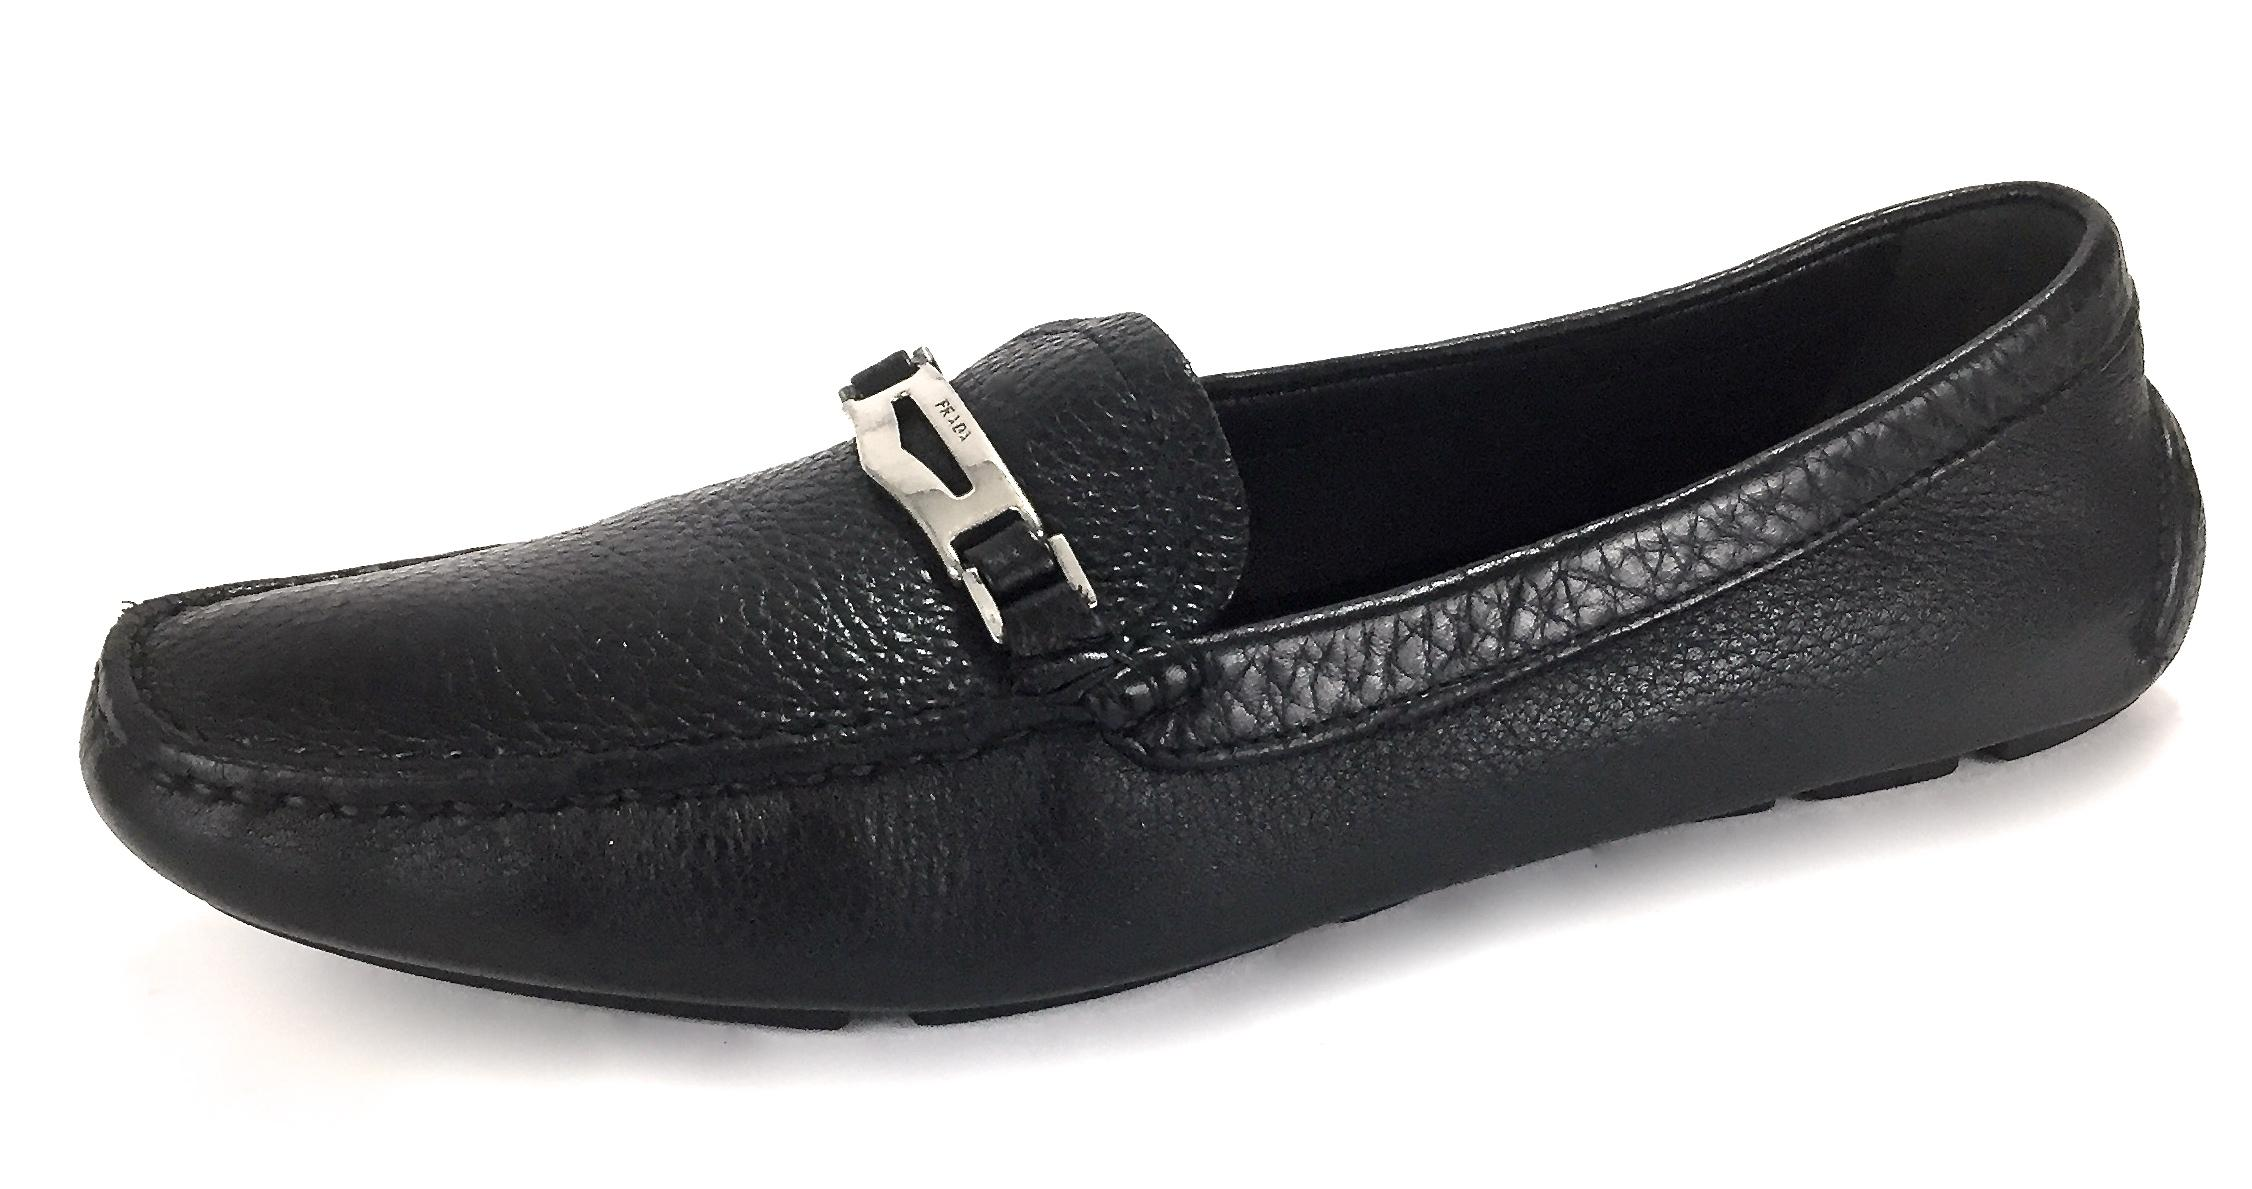 "Prada Black Milano Made In Italy Leather ""Driving Loafers Flats US Size EU 38 (Approx. US Flats 8) Regular (M, B) 70cded"